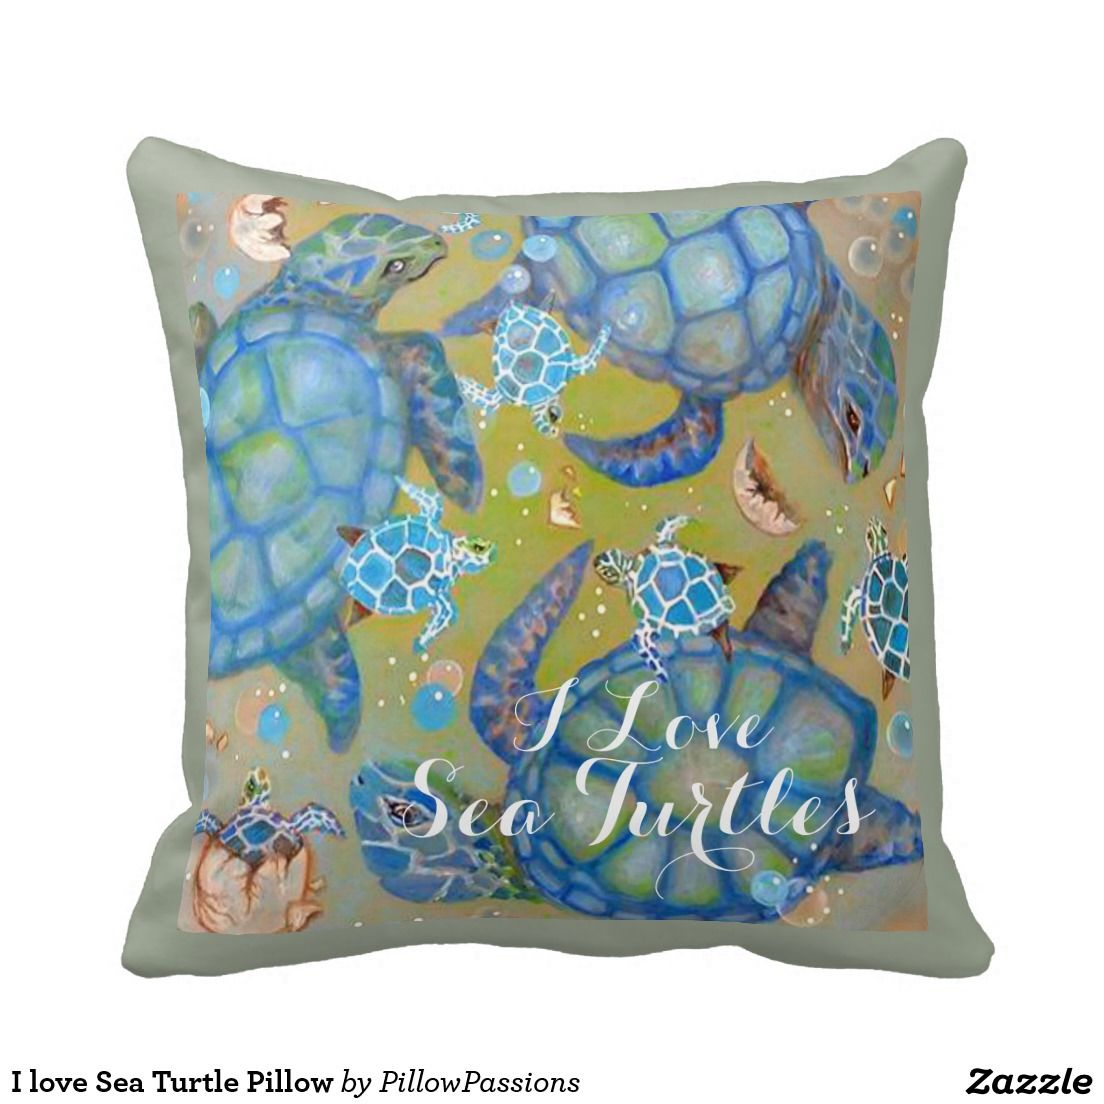 I love sea turtle pillow turtle pillows and pillow design